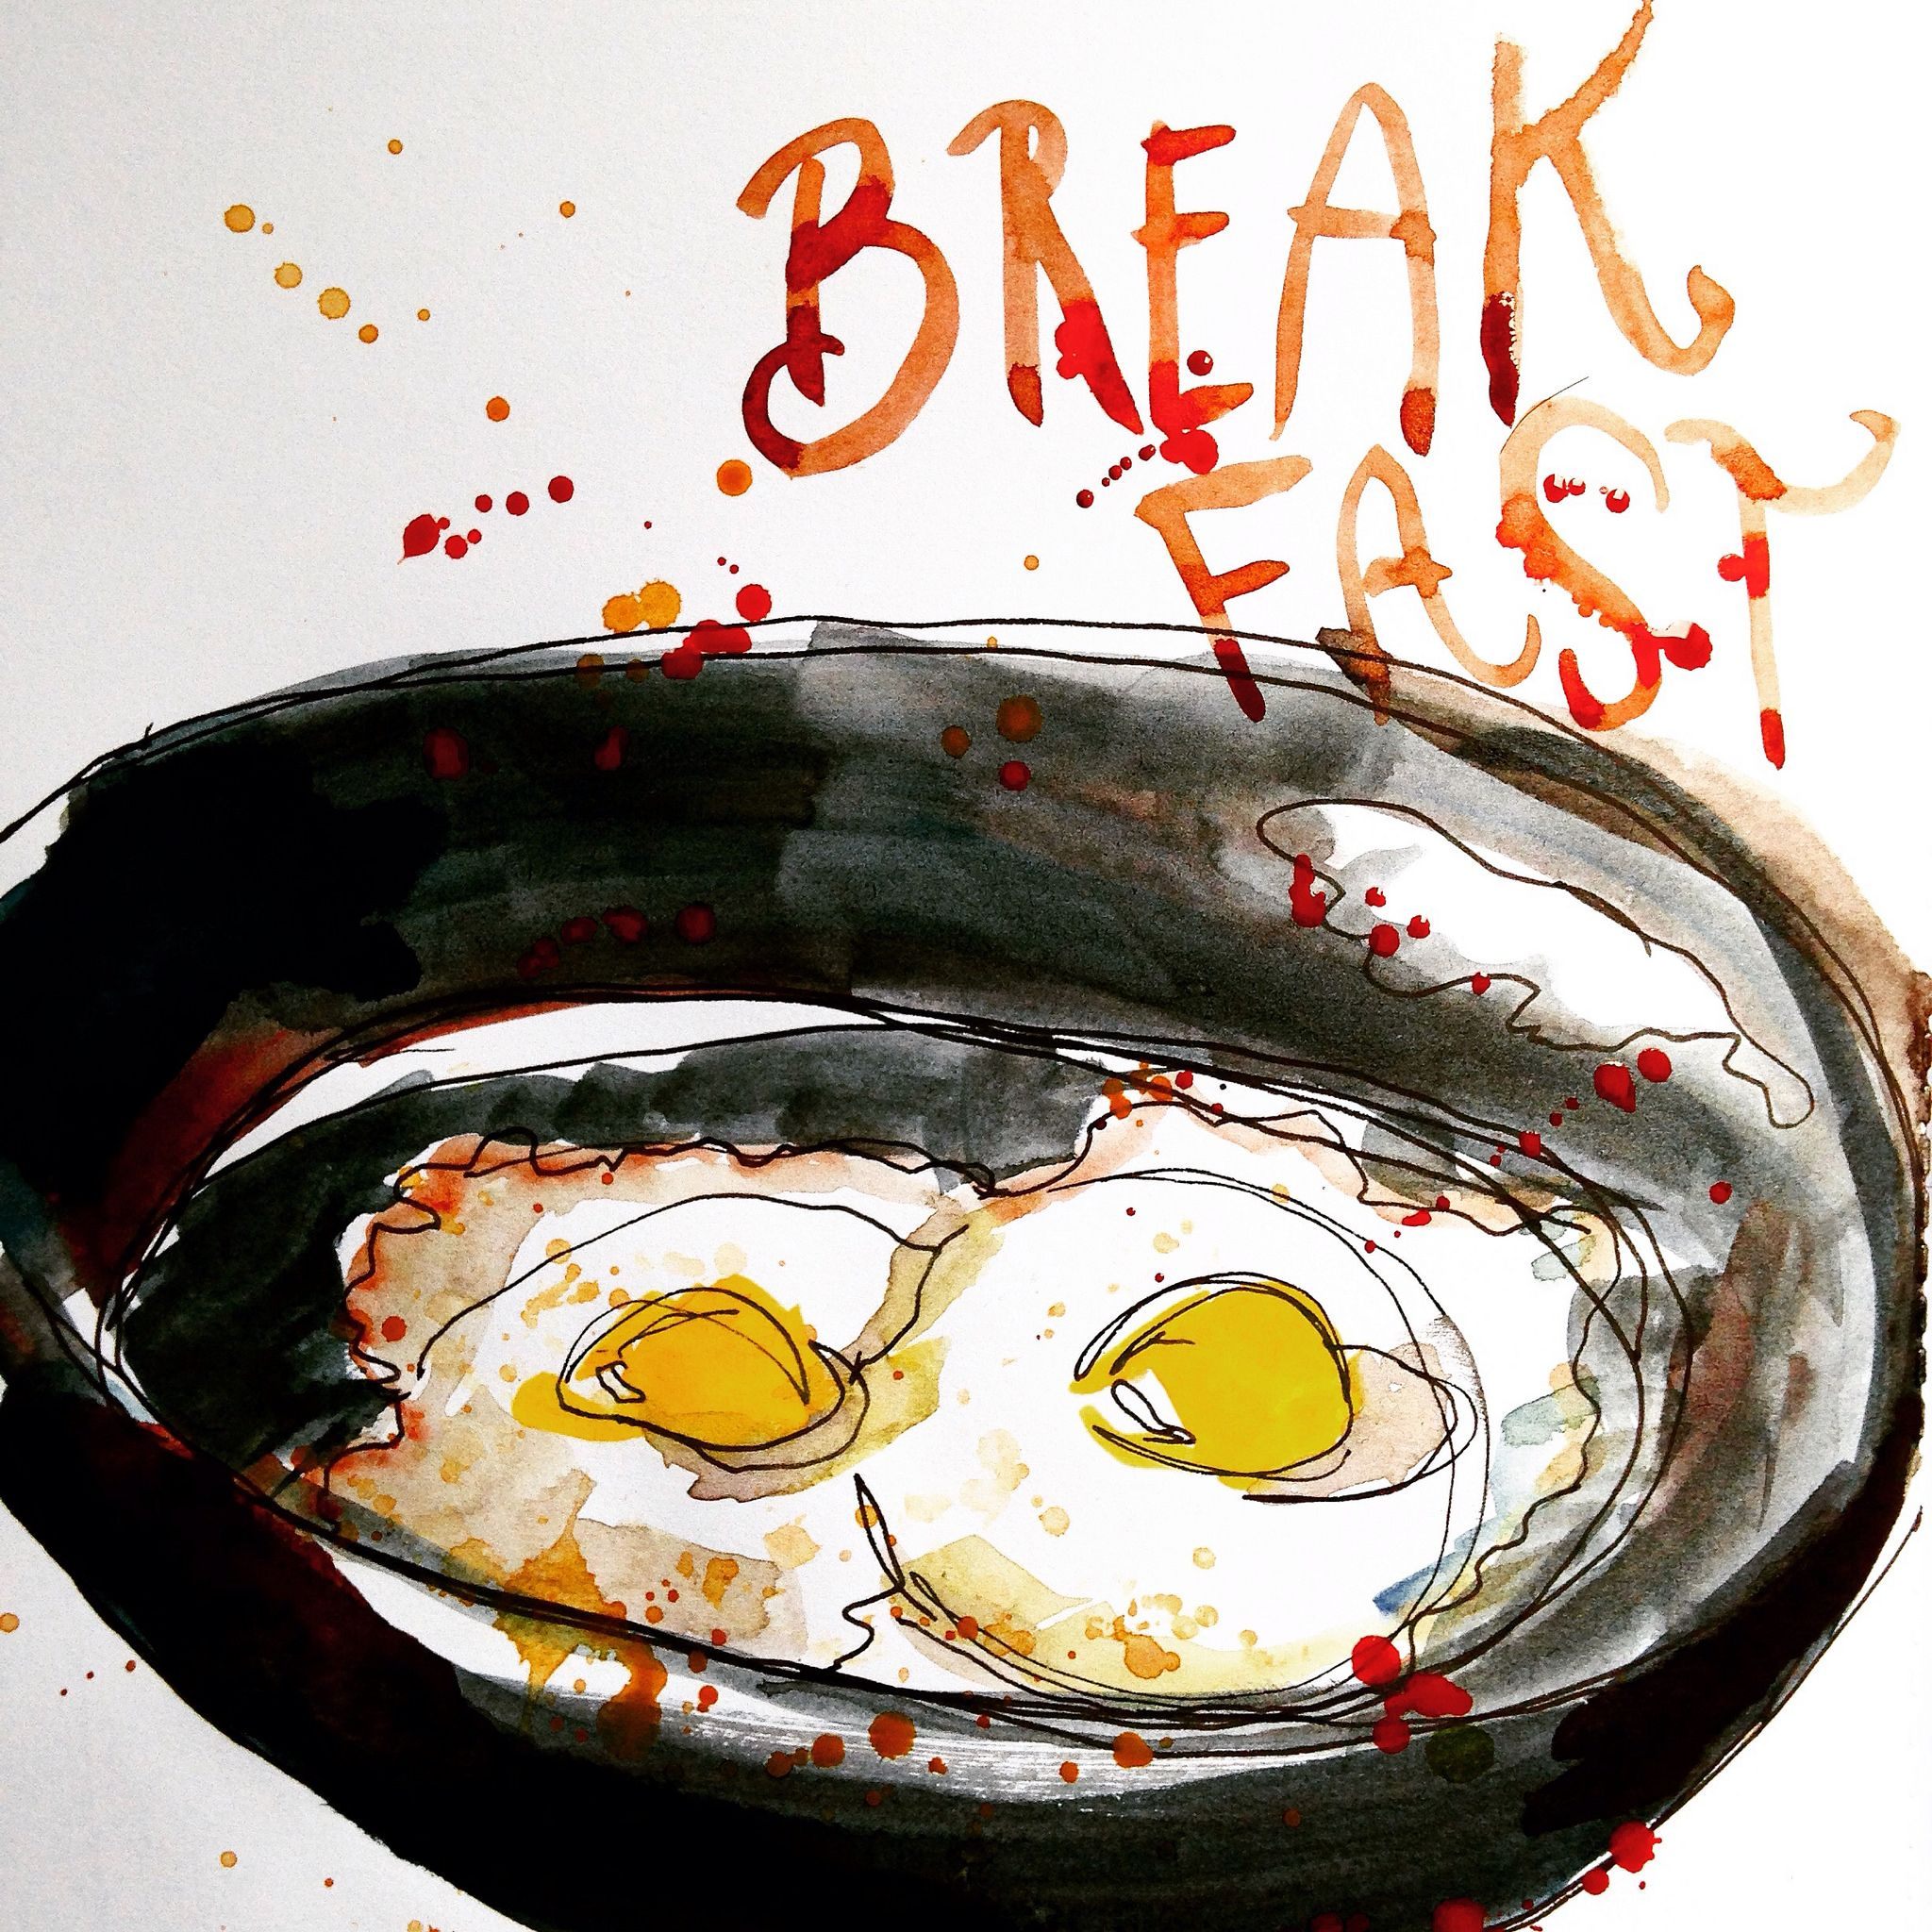 Breakfast | Fried eggs in a skillet | By: melisnorth